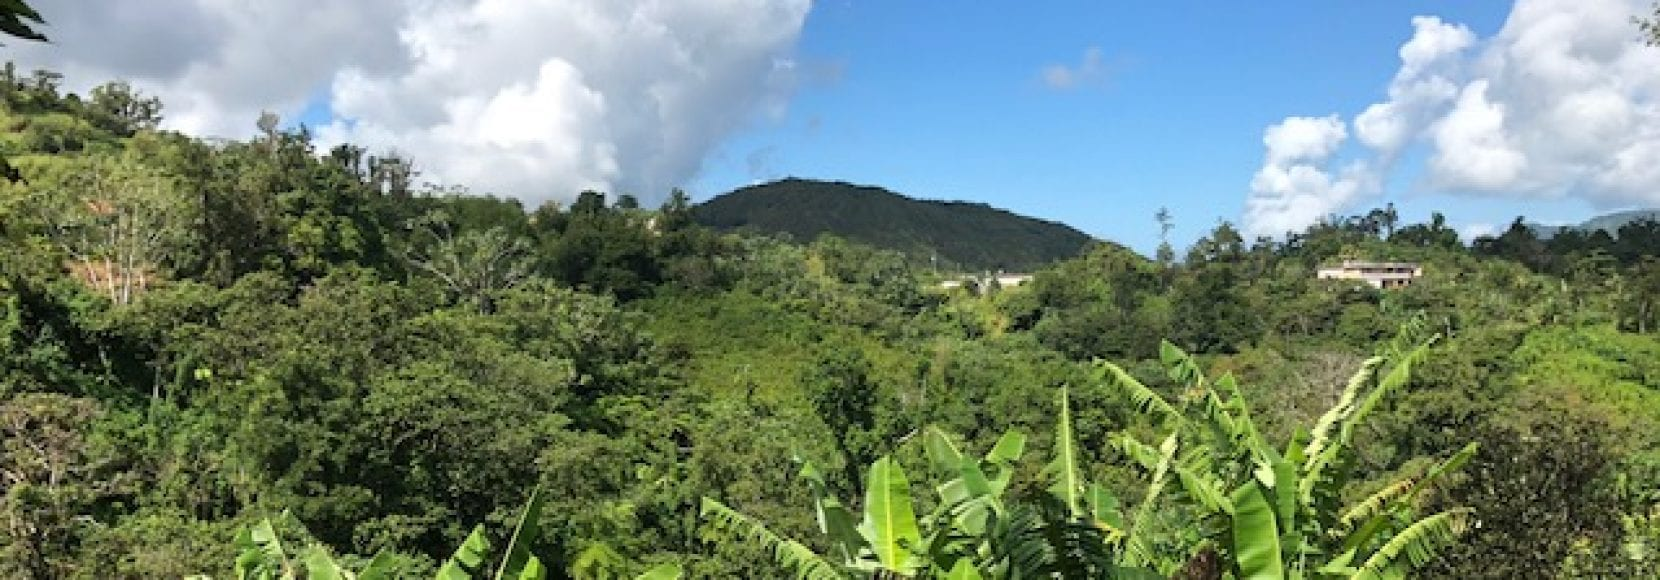 A landscape in Puerto Rico